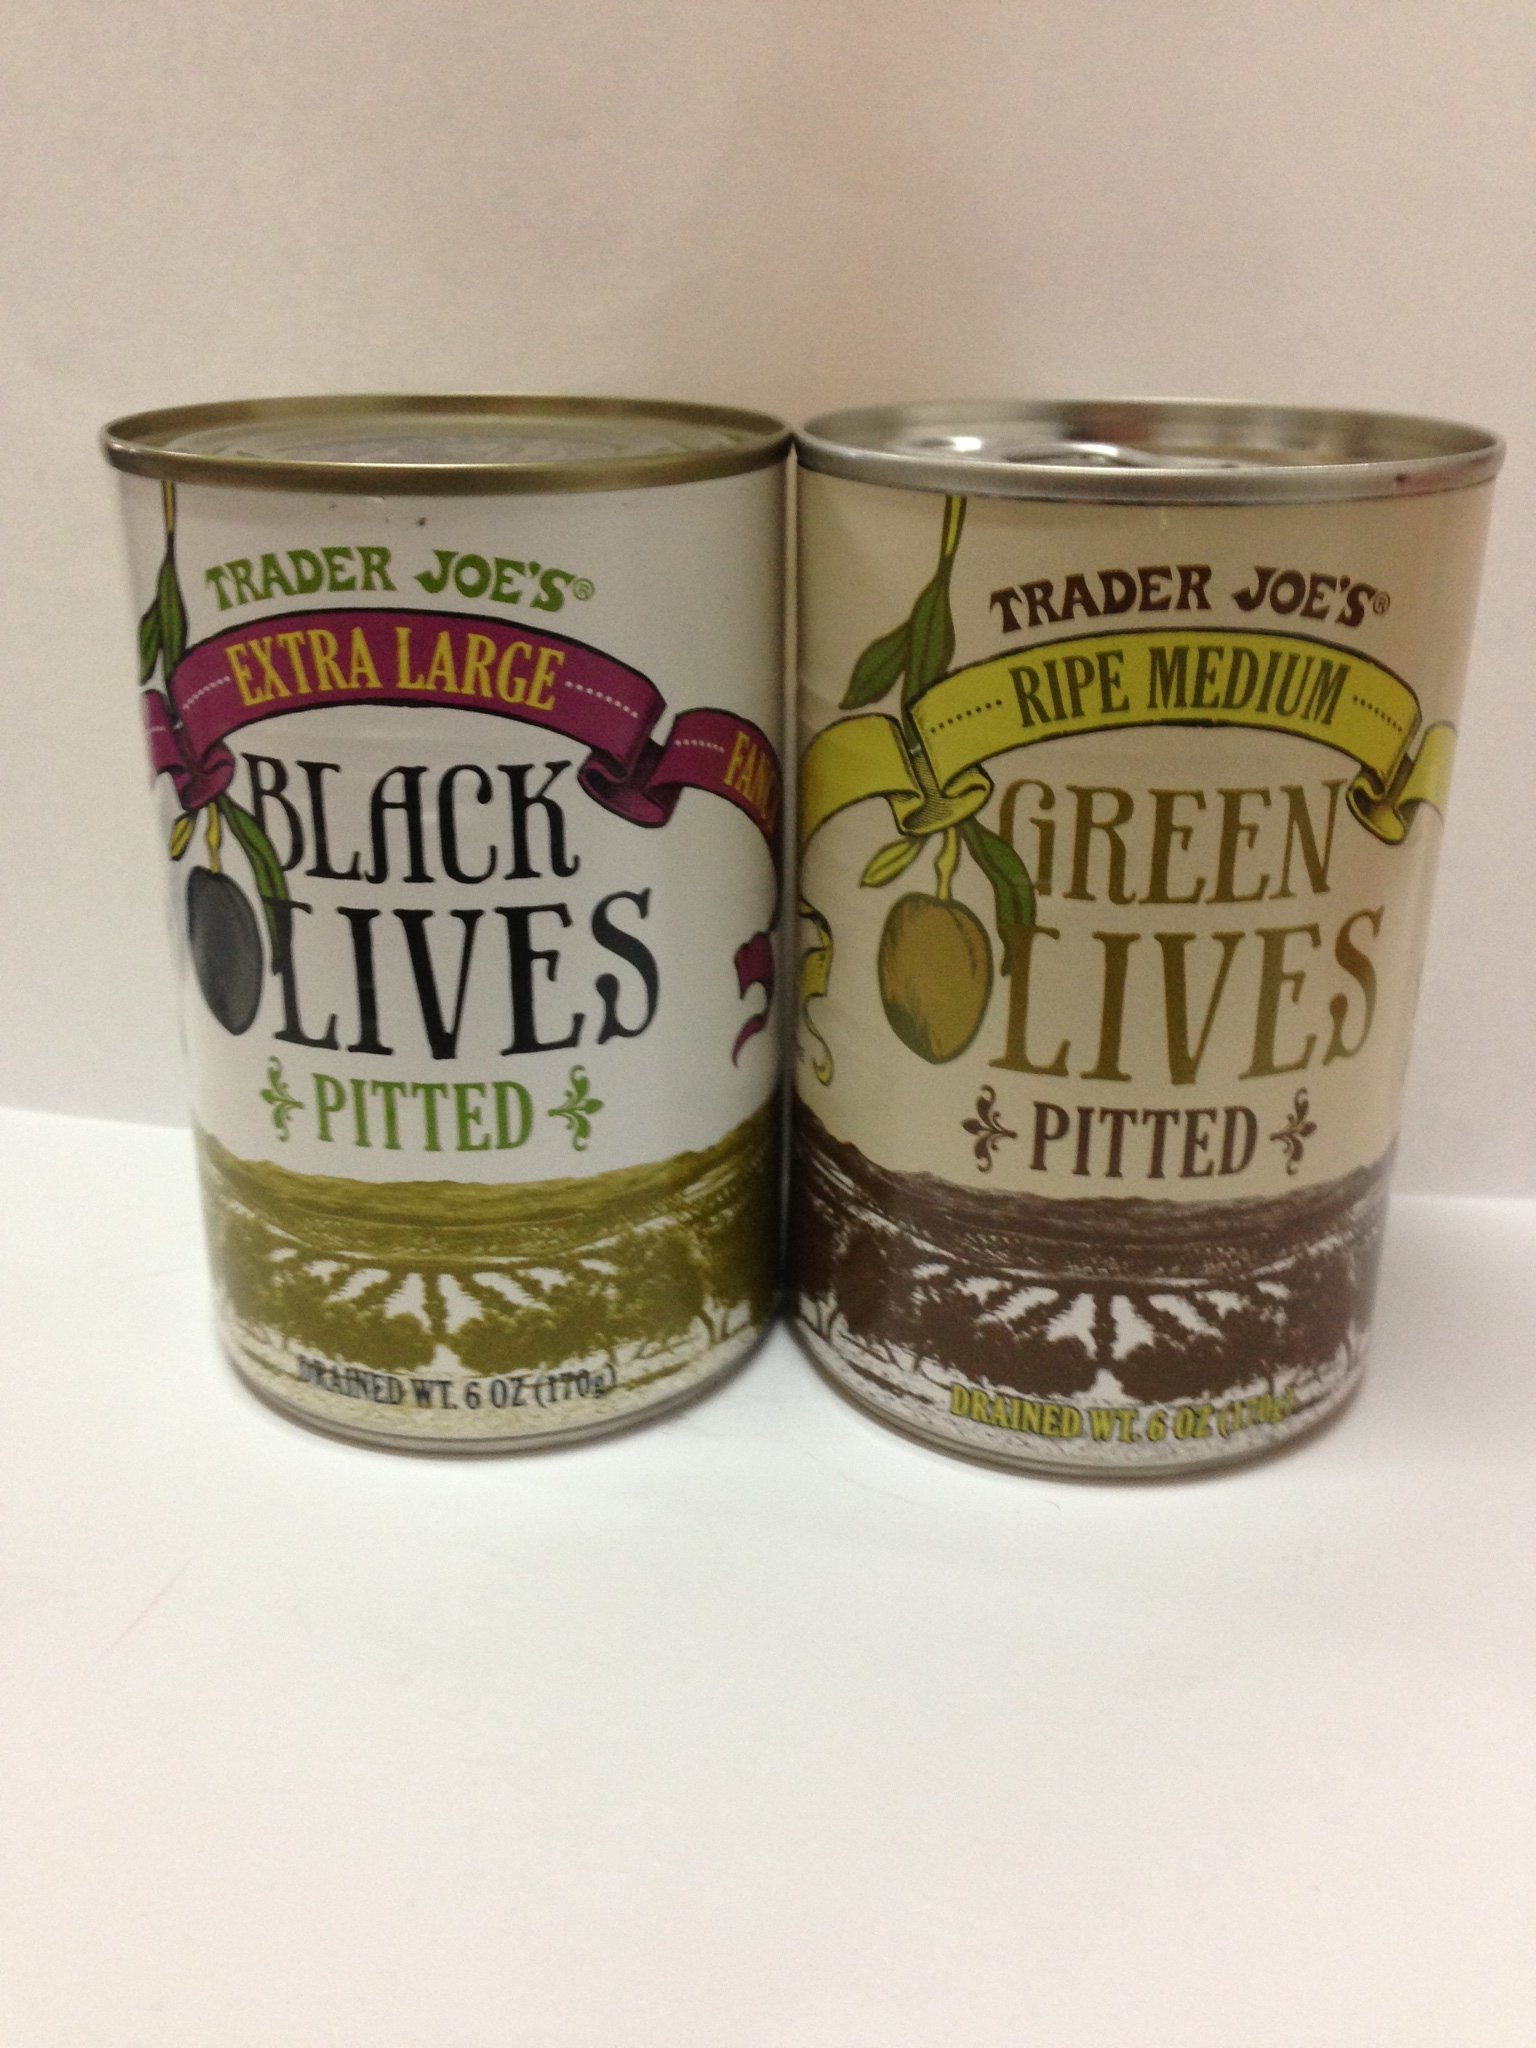 Trader Joe's Ripe Extra Large Fancy Black Olives Pitted and Trader Joe's Ripe Medium Green Olives Pitted